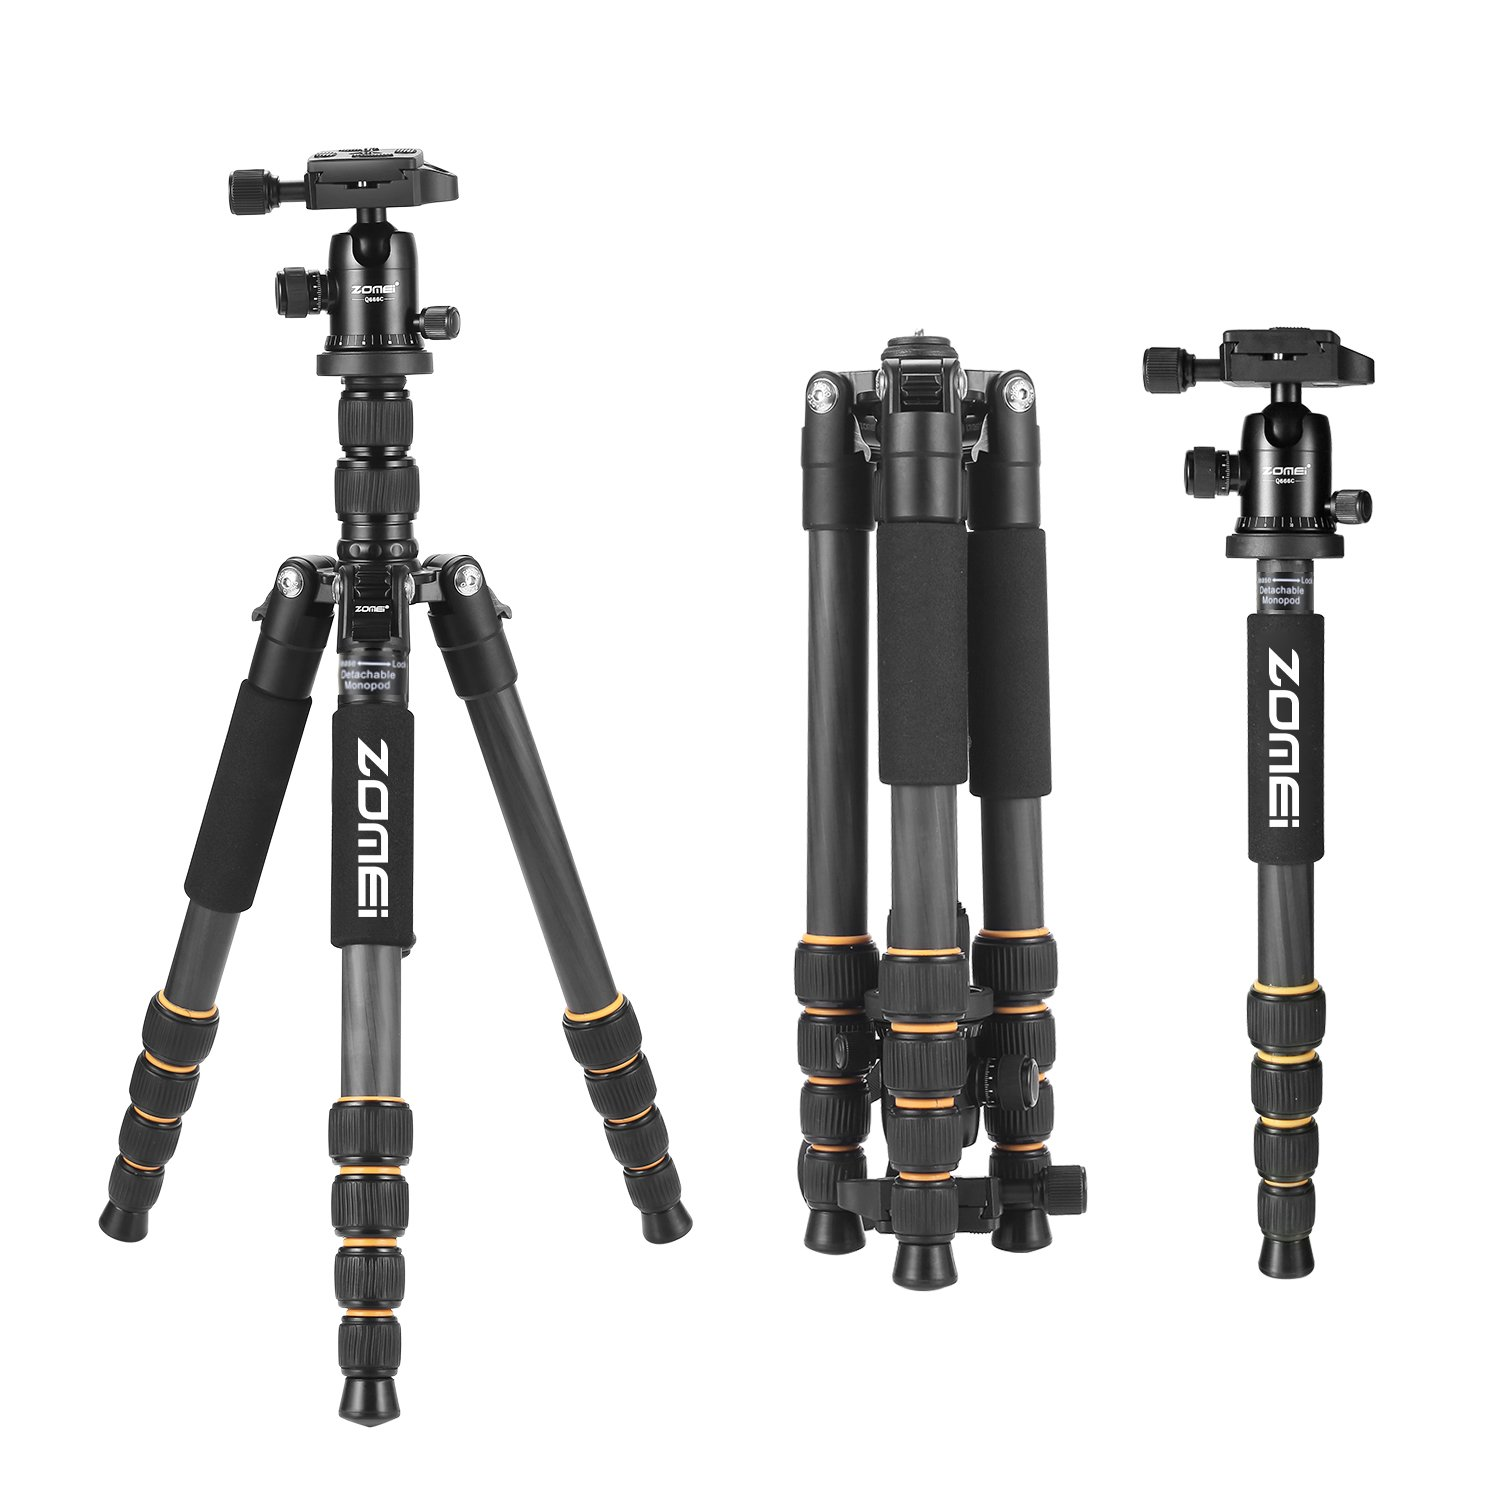 ZOMEI Carbon Fiber Q666C Tripod Heavy Duty Lightweight Travel with 360 Degree Ball Head Compact for Canon Sony, Nikon, Samsung, Panasonic, Olympus, Kodak, Fuji, Cameras and DSLR by ZOMEI